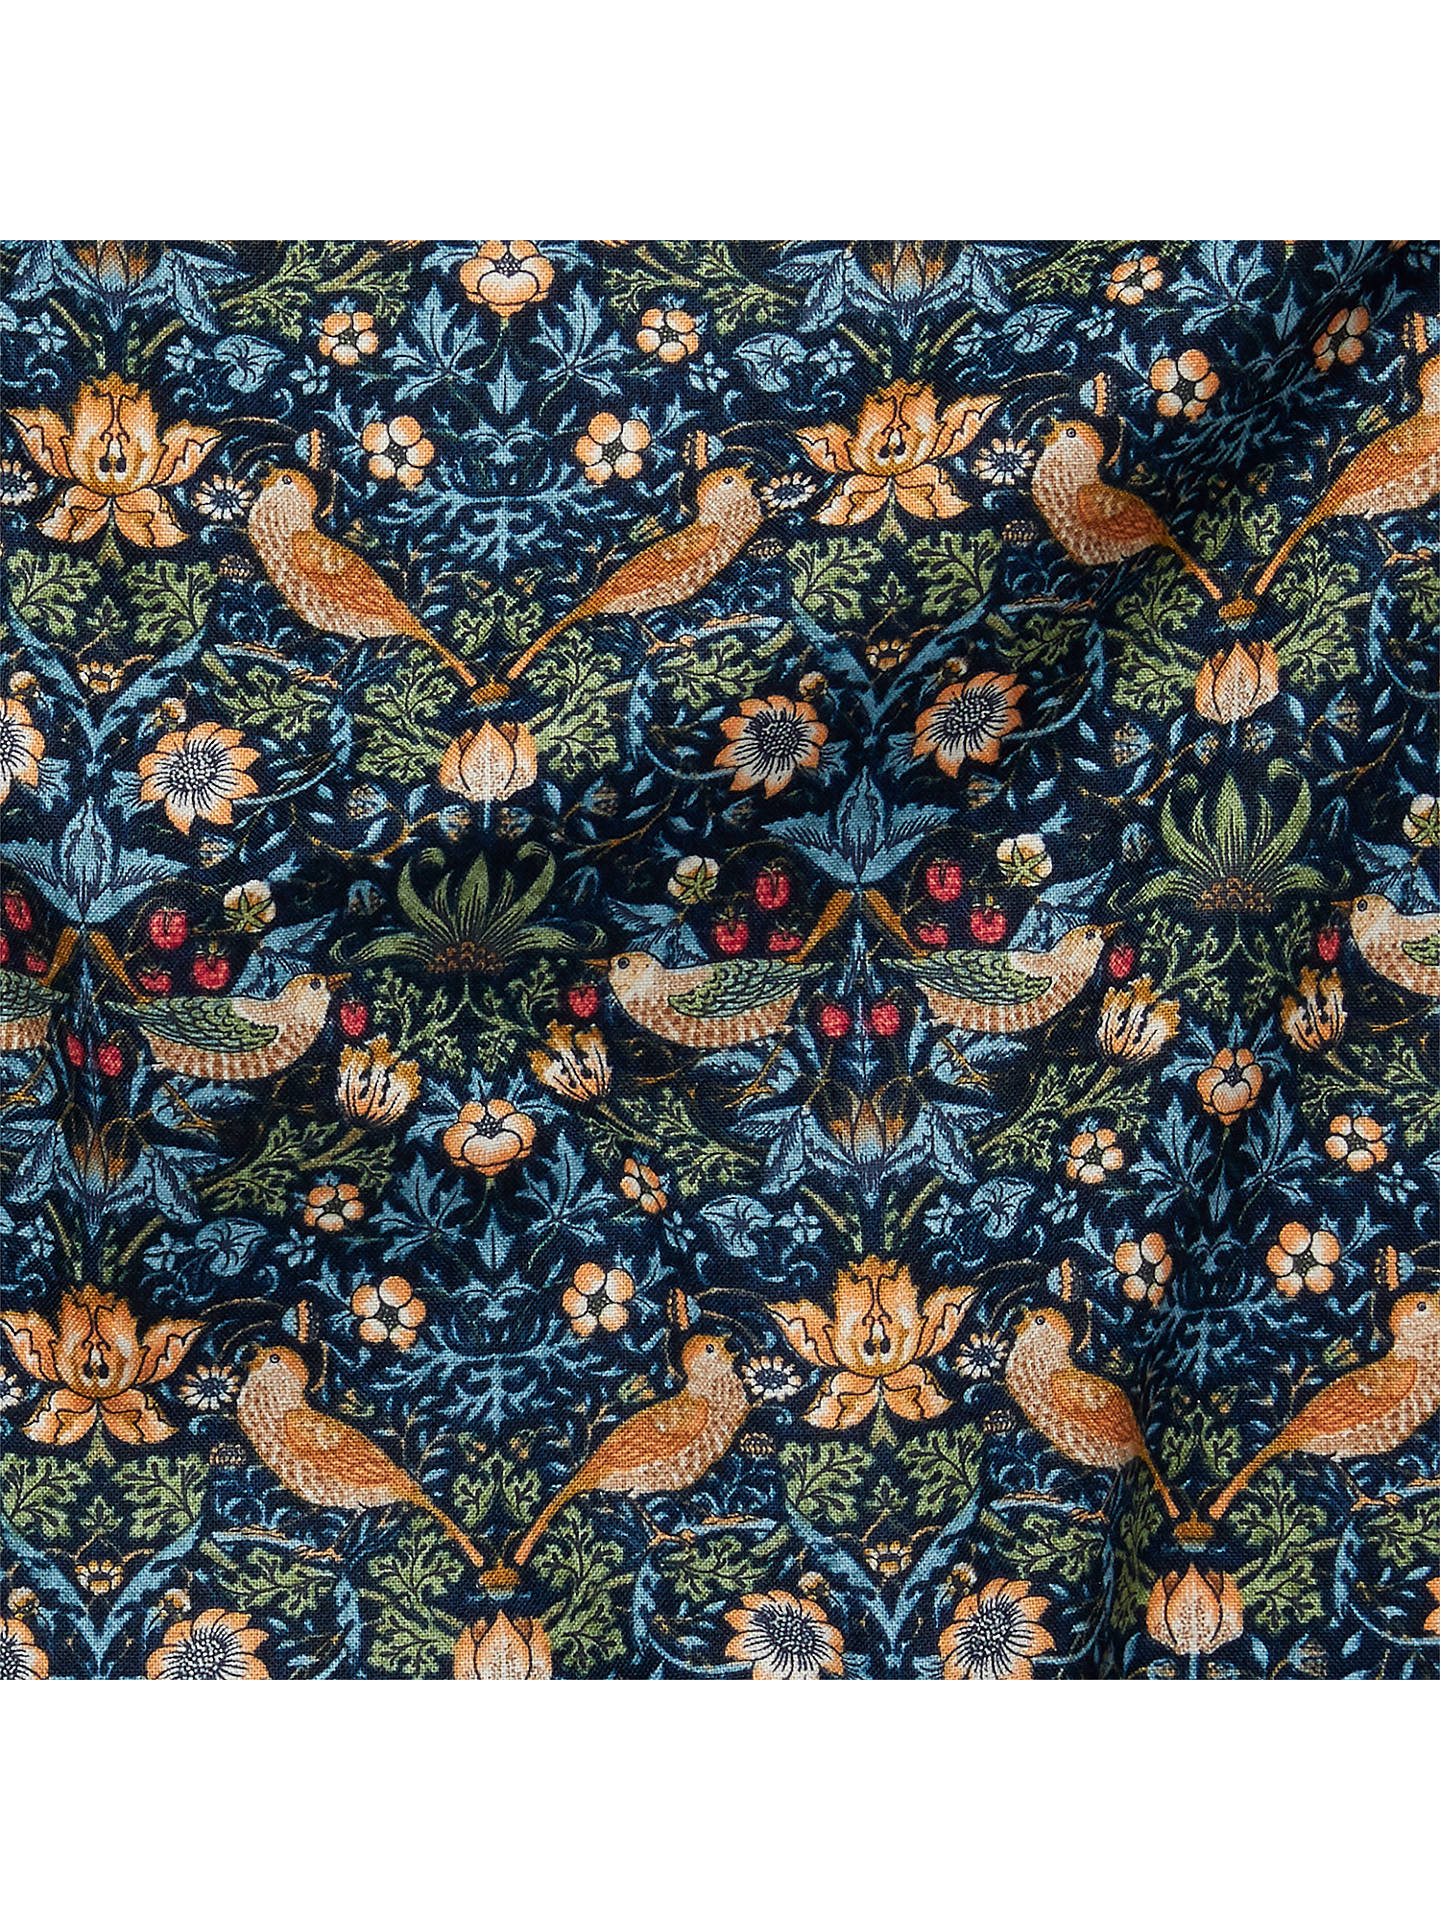 Buy Morris & Co. Mini Strawberry Thief Print Fabric, Navy Online at johnlewis.com